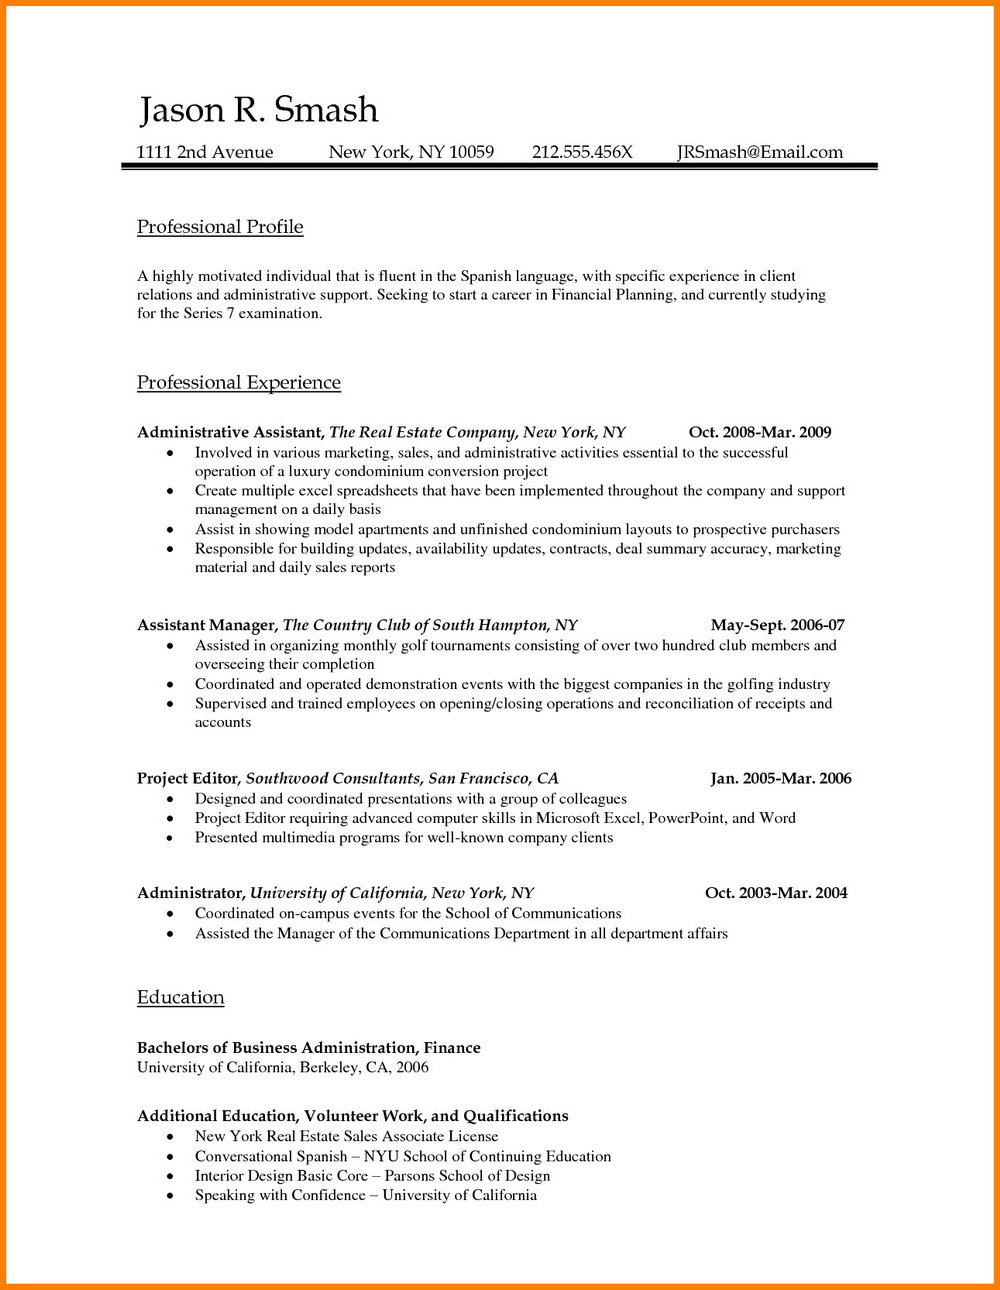 Resume Templates For Word 2007 Download